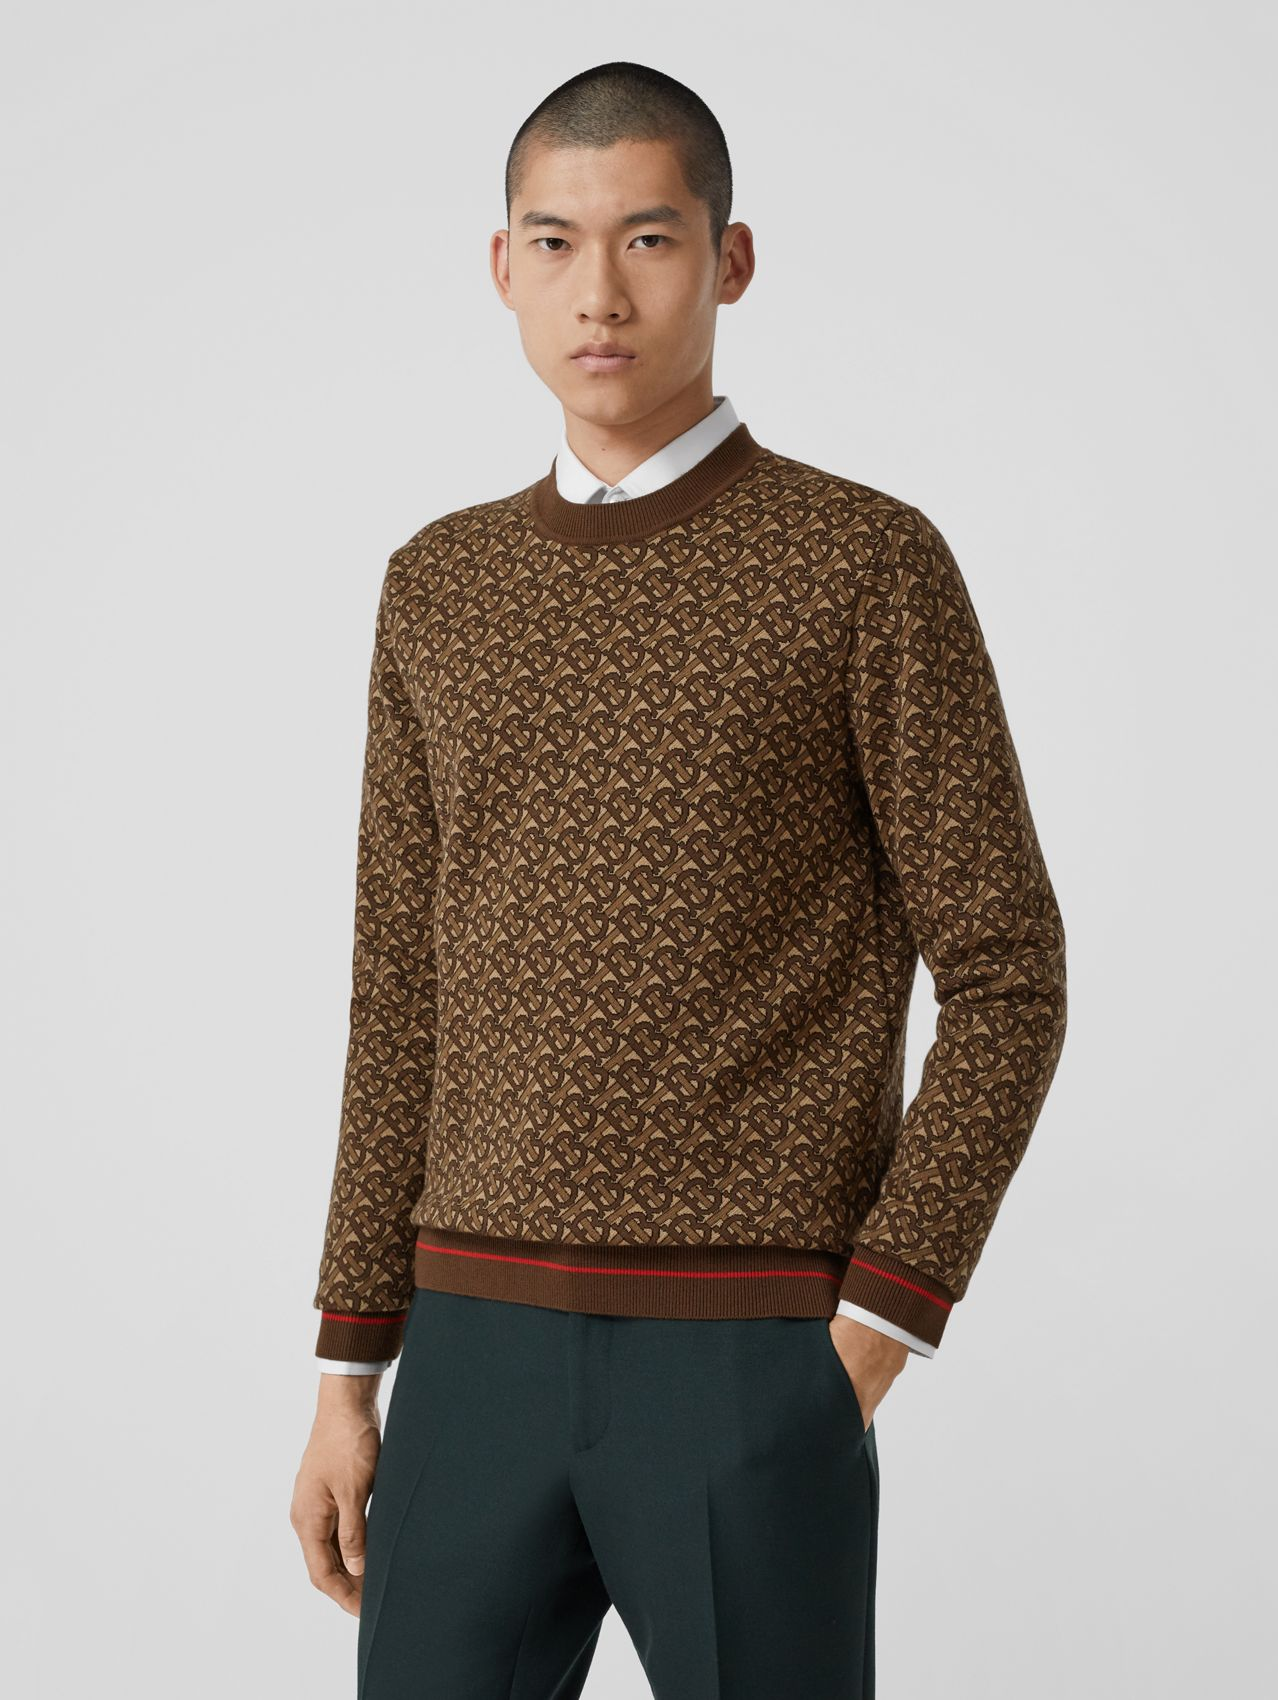 Monogram Merino Wool Jacquard Sweater in Bridle Brown